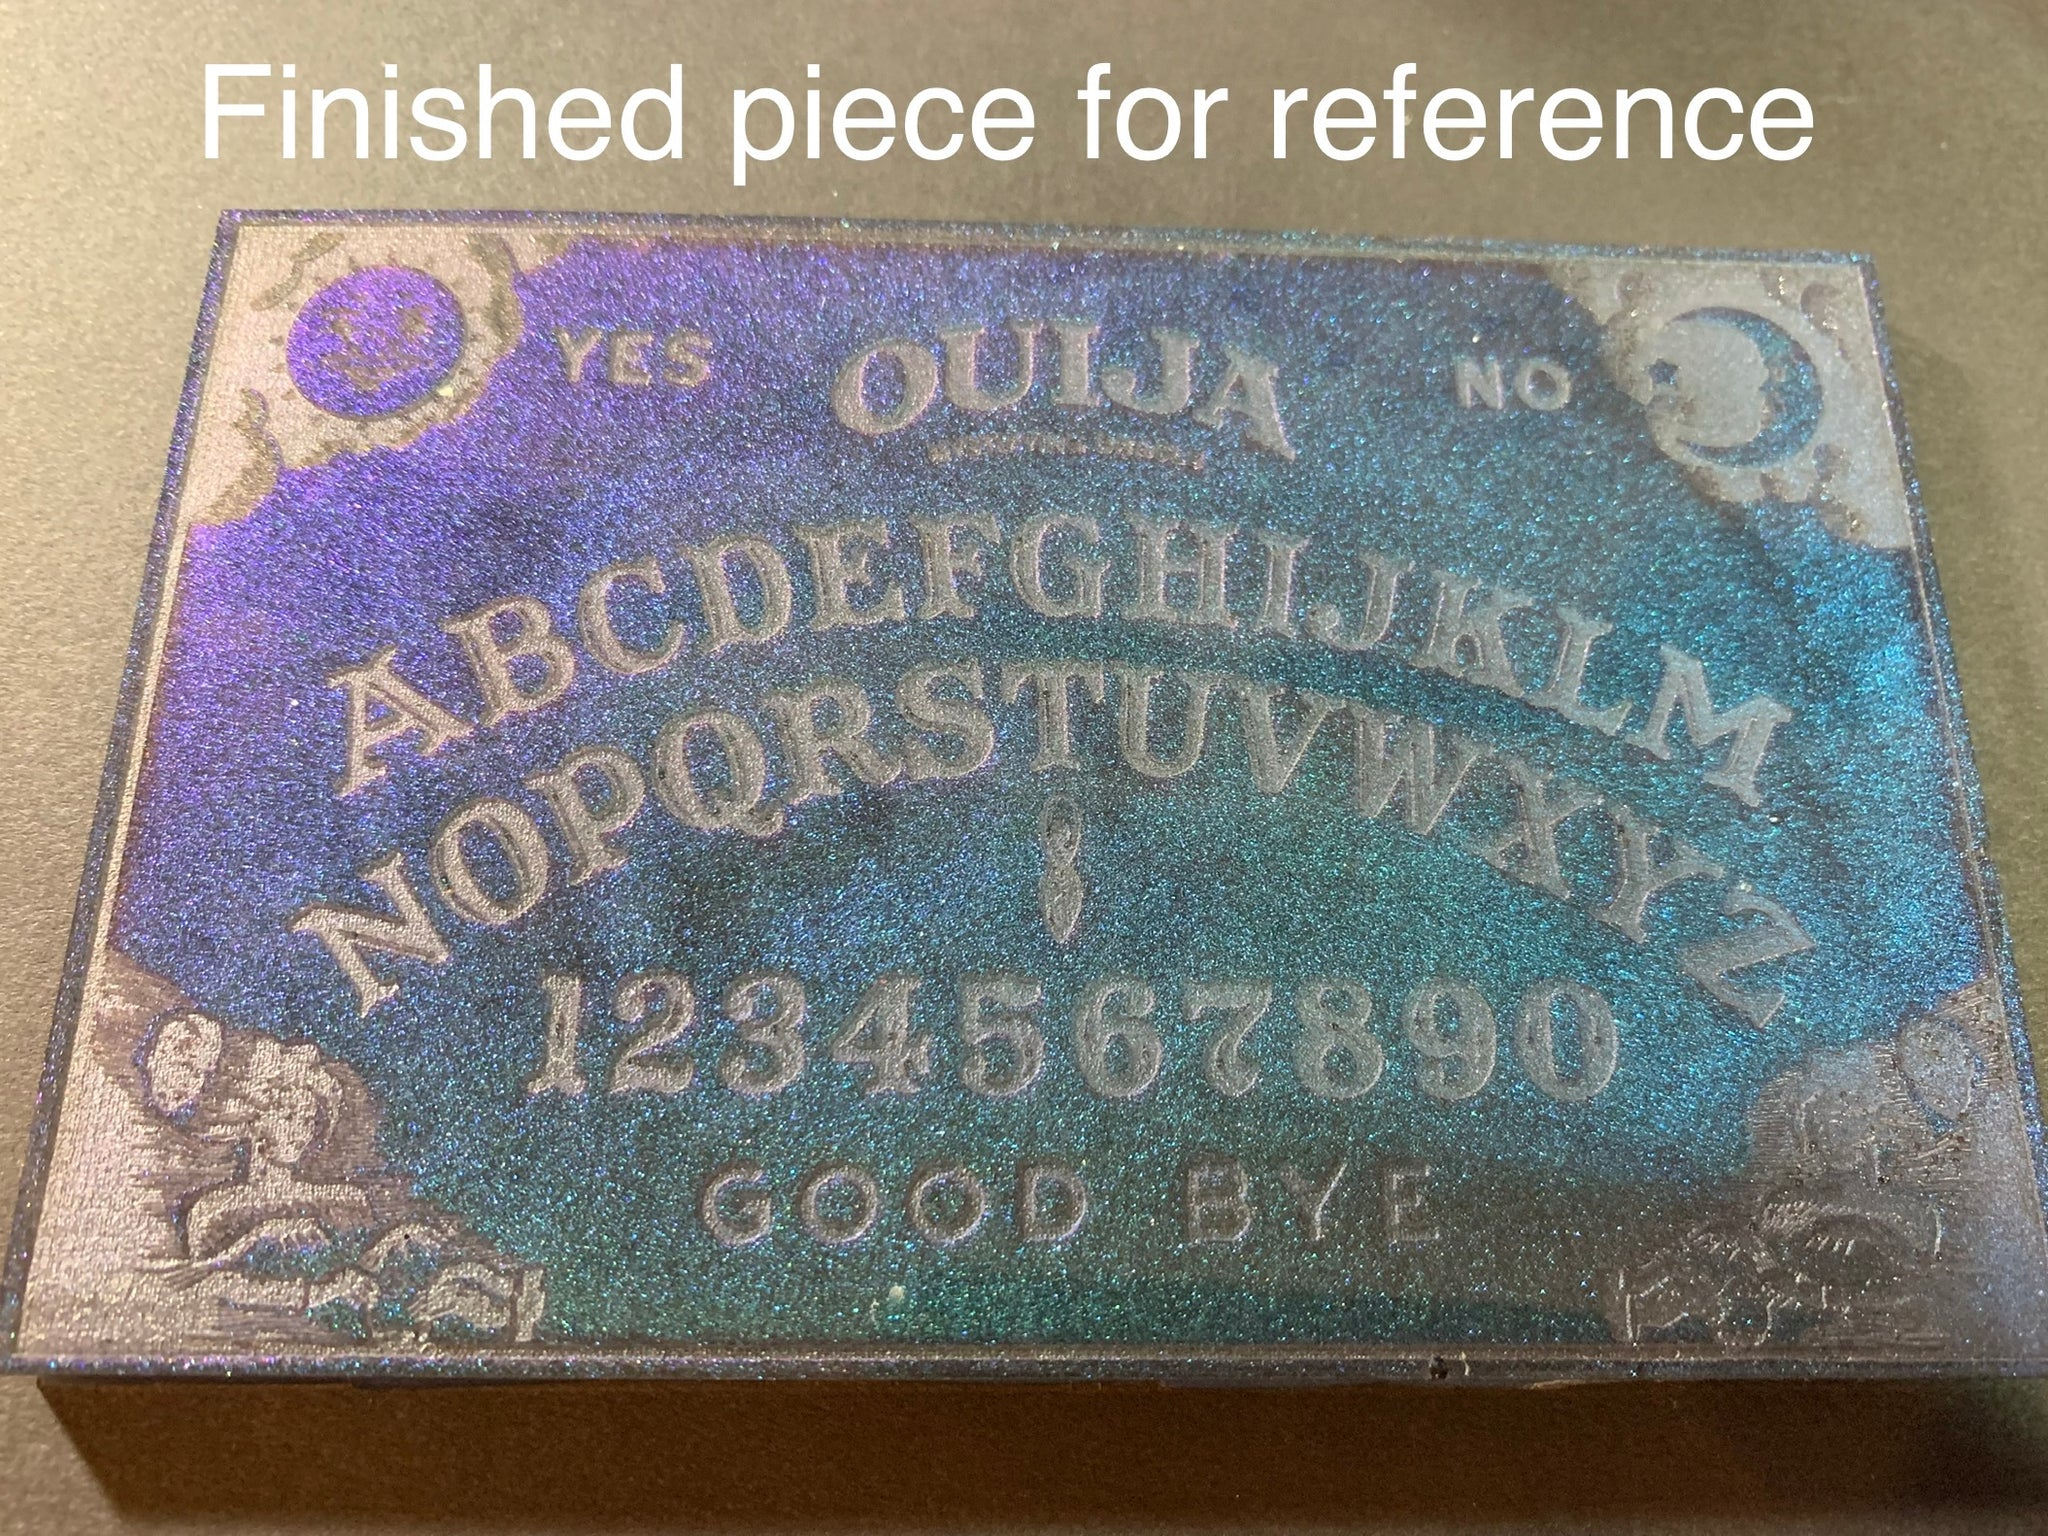 Glossy ouija board mold with matte details